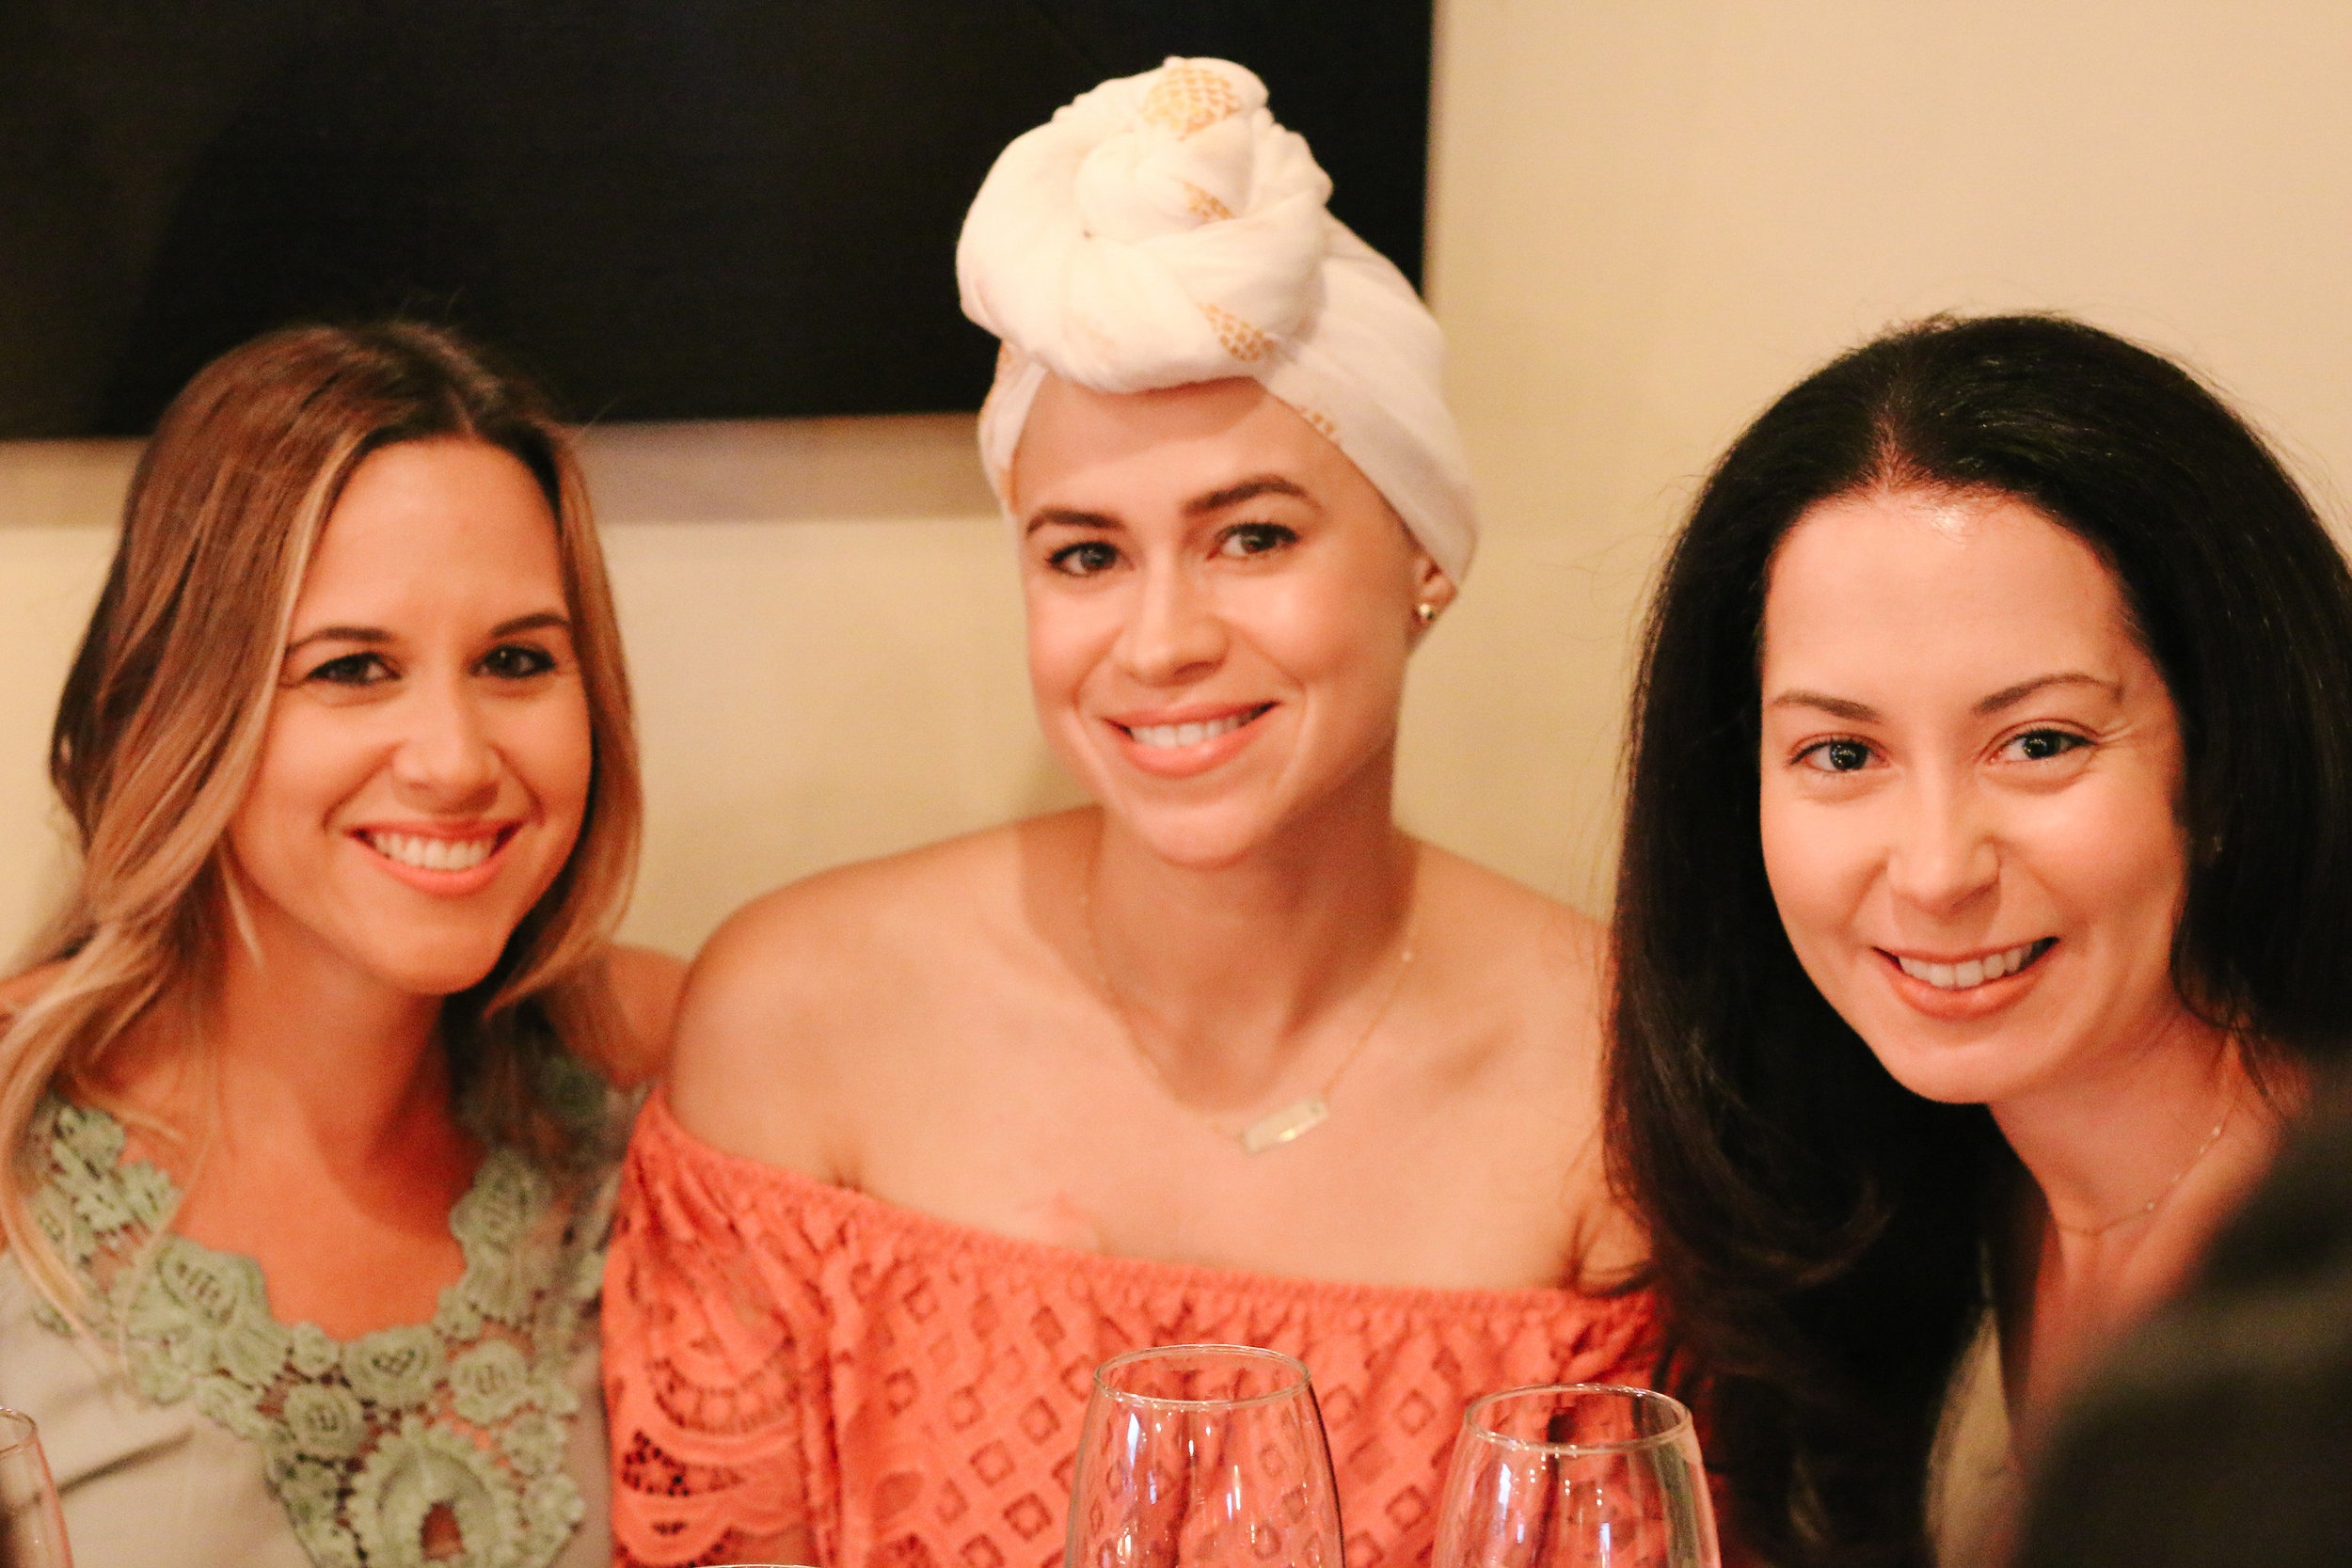 Women Who Wine_Uncorked Conversations_Off The Mile_Miami Wine Events_Wine Tasting Miami_39.jpg